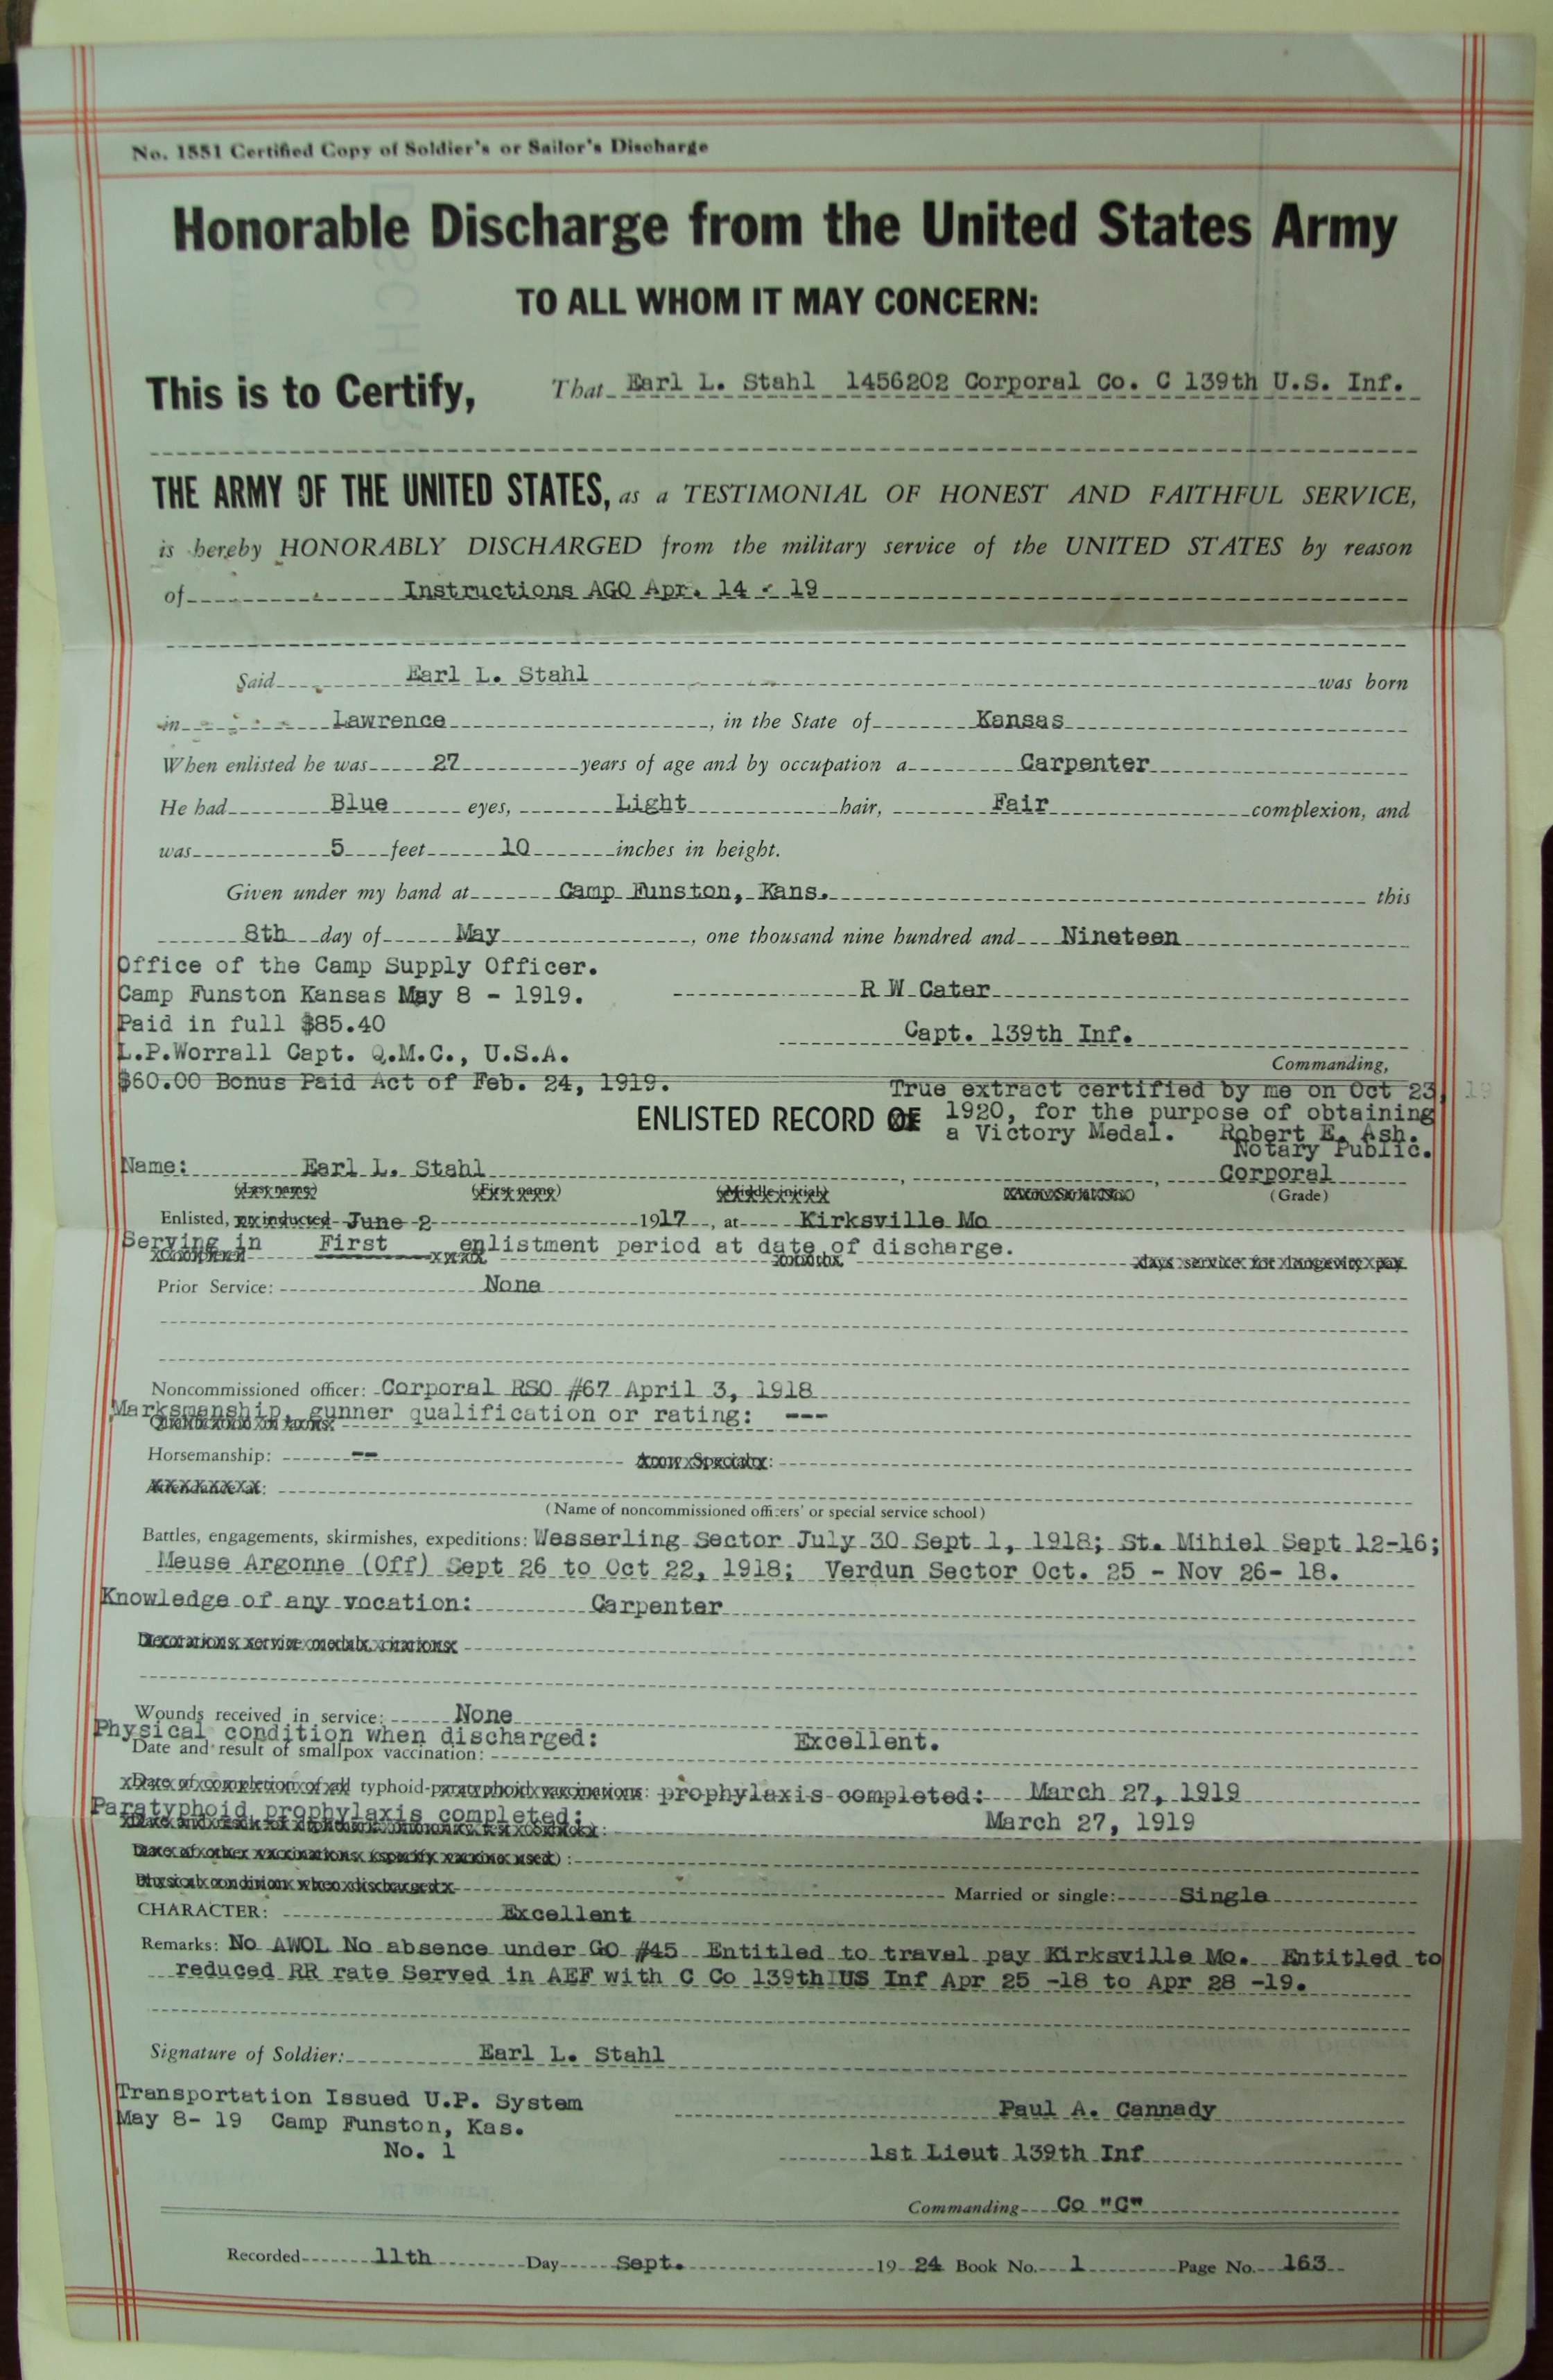 Honorable Discharge Form, Earl L. Stahl Collection, Courtesy of Craig Bowers.